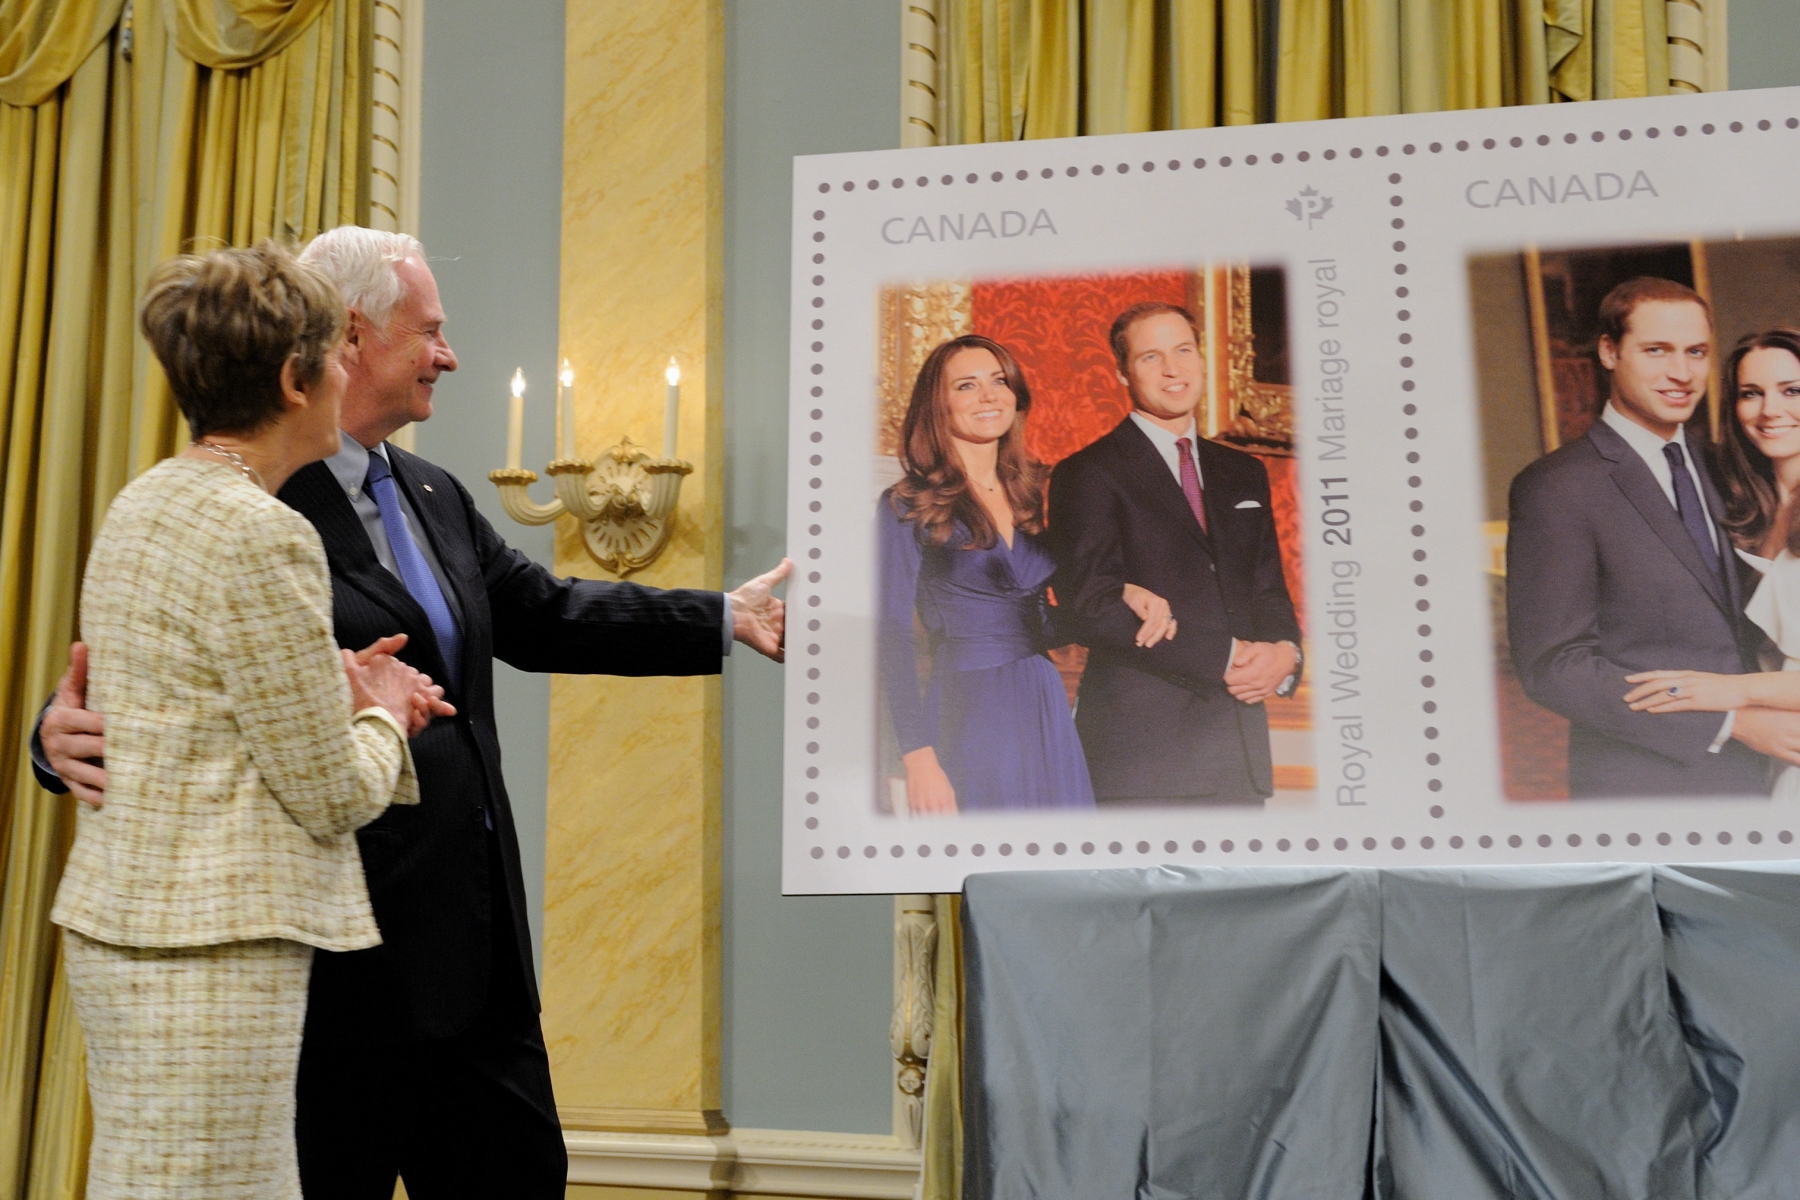 The new stamps feature photographs of the Royal Couple and were personally approved by His Royal Highness Prince William and Her Majesty The Queen. The domestic stamp shows a photo of the couple when they announced their engagement last November, and the international rate stamp bears the official engagement portrait taken by famed photographer Mario Testino.